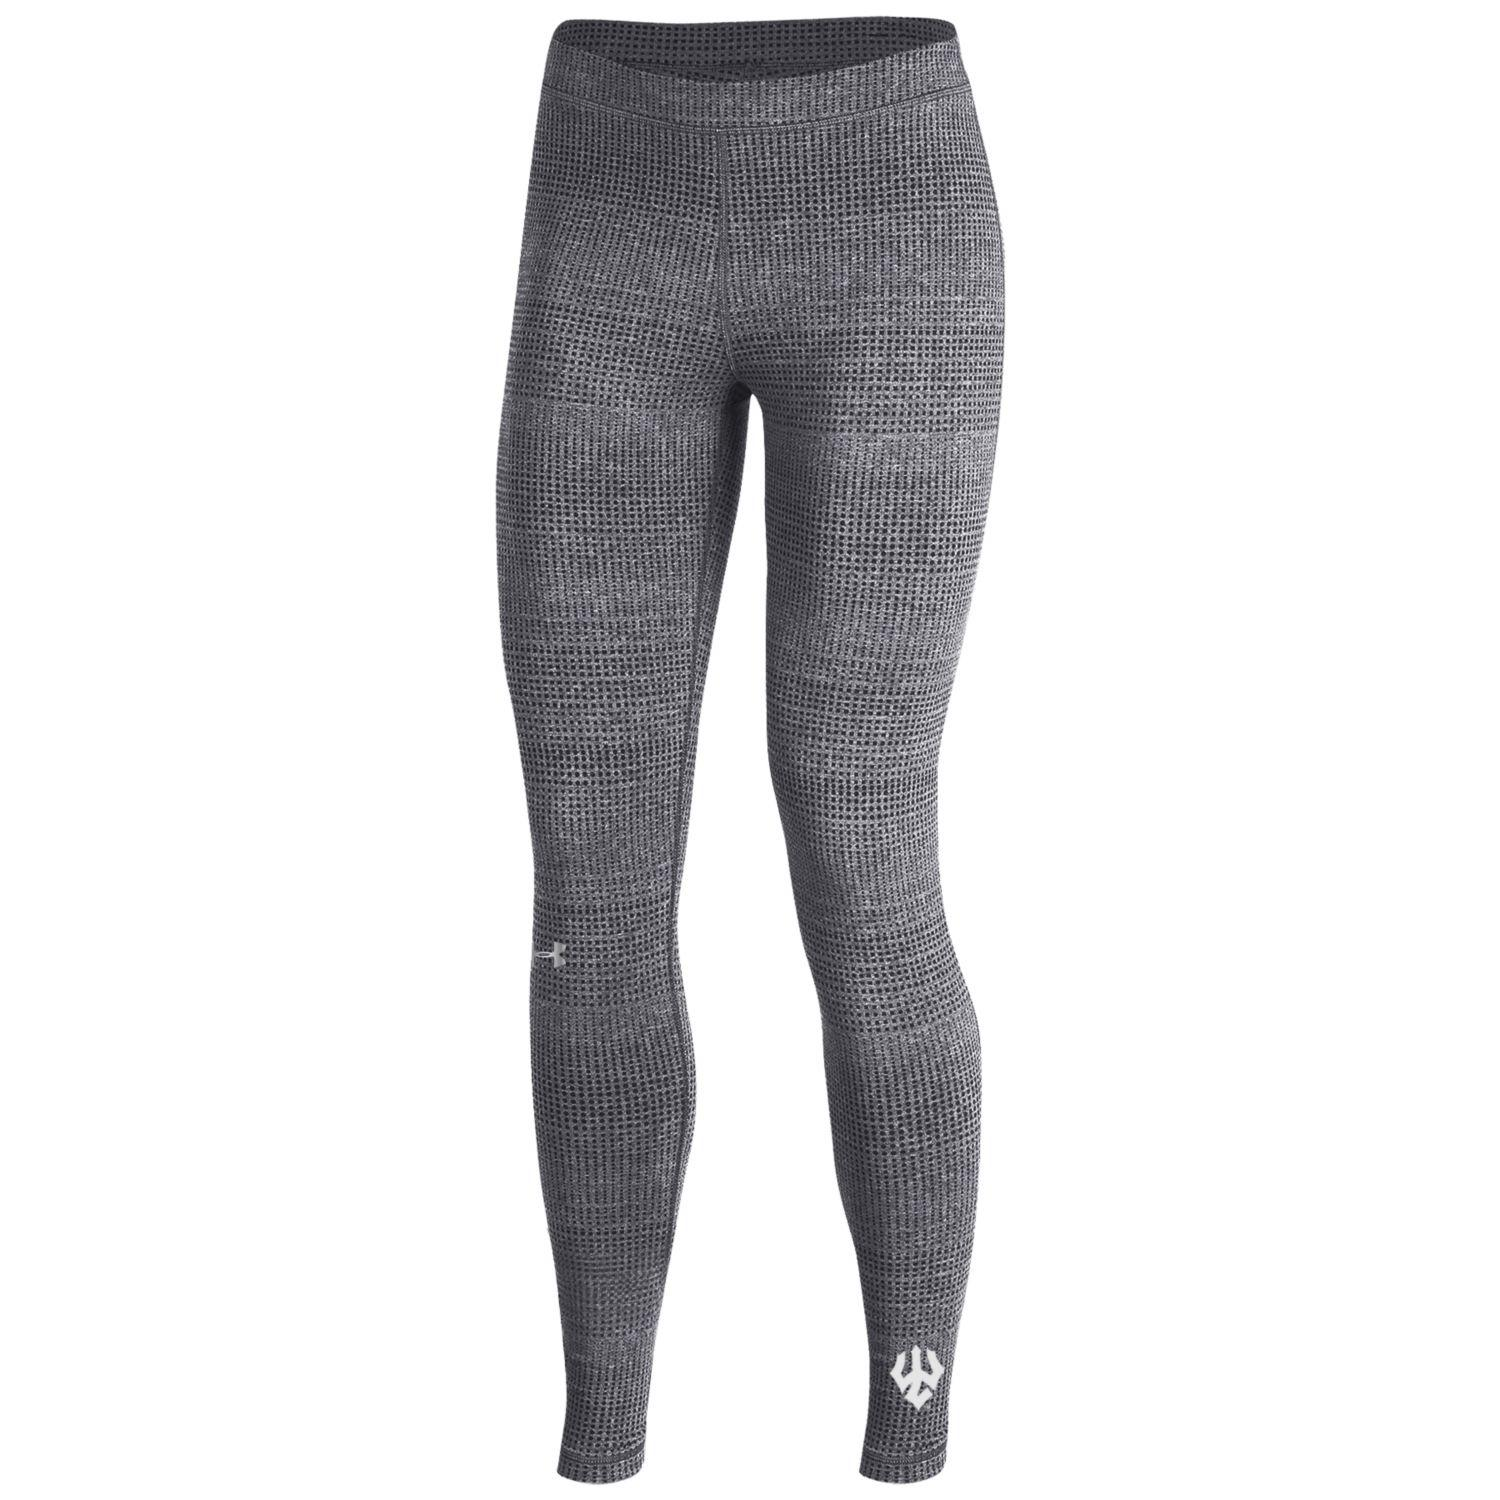 Under Armour Carbon Graphic Legging